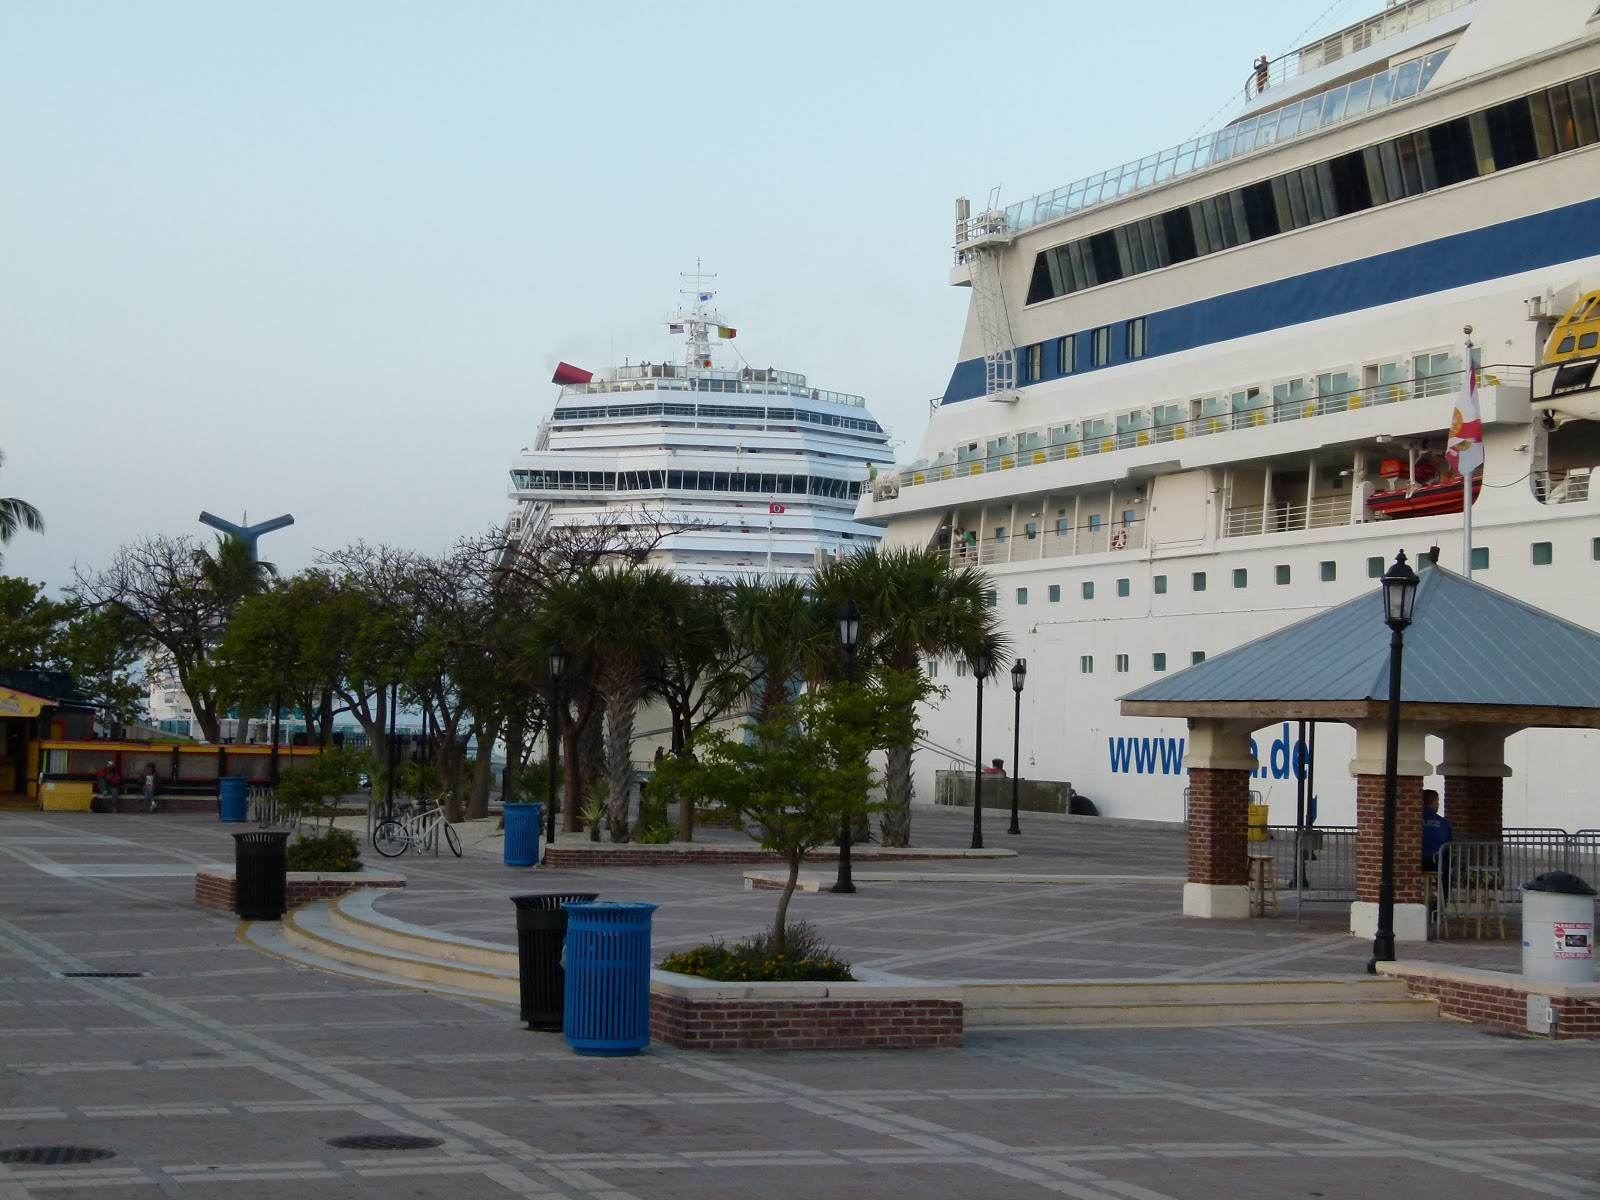 Key West Vacation And Visit Guide A THREE Cruise Ship Day In Key West - Cruise ships key west